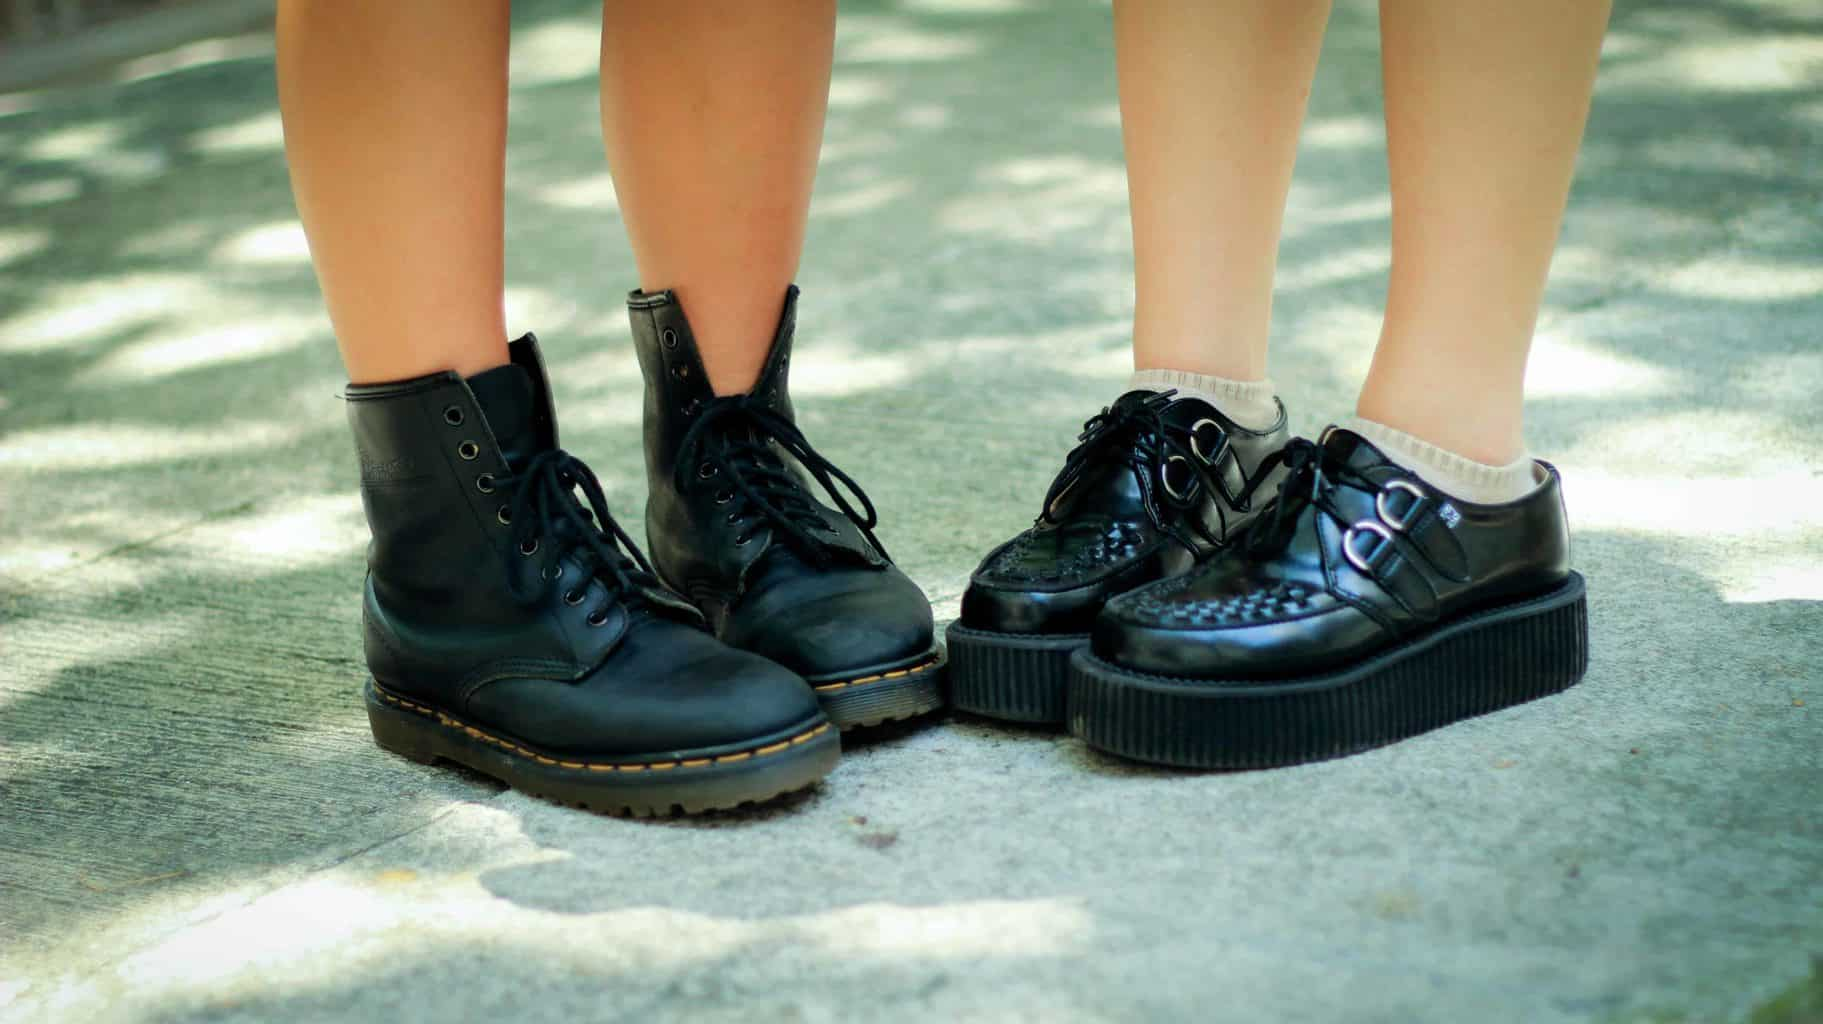 Two pairs of leather shoes worn by kids.